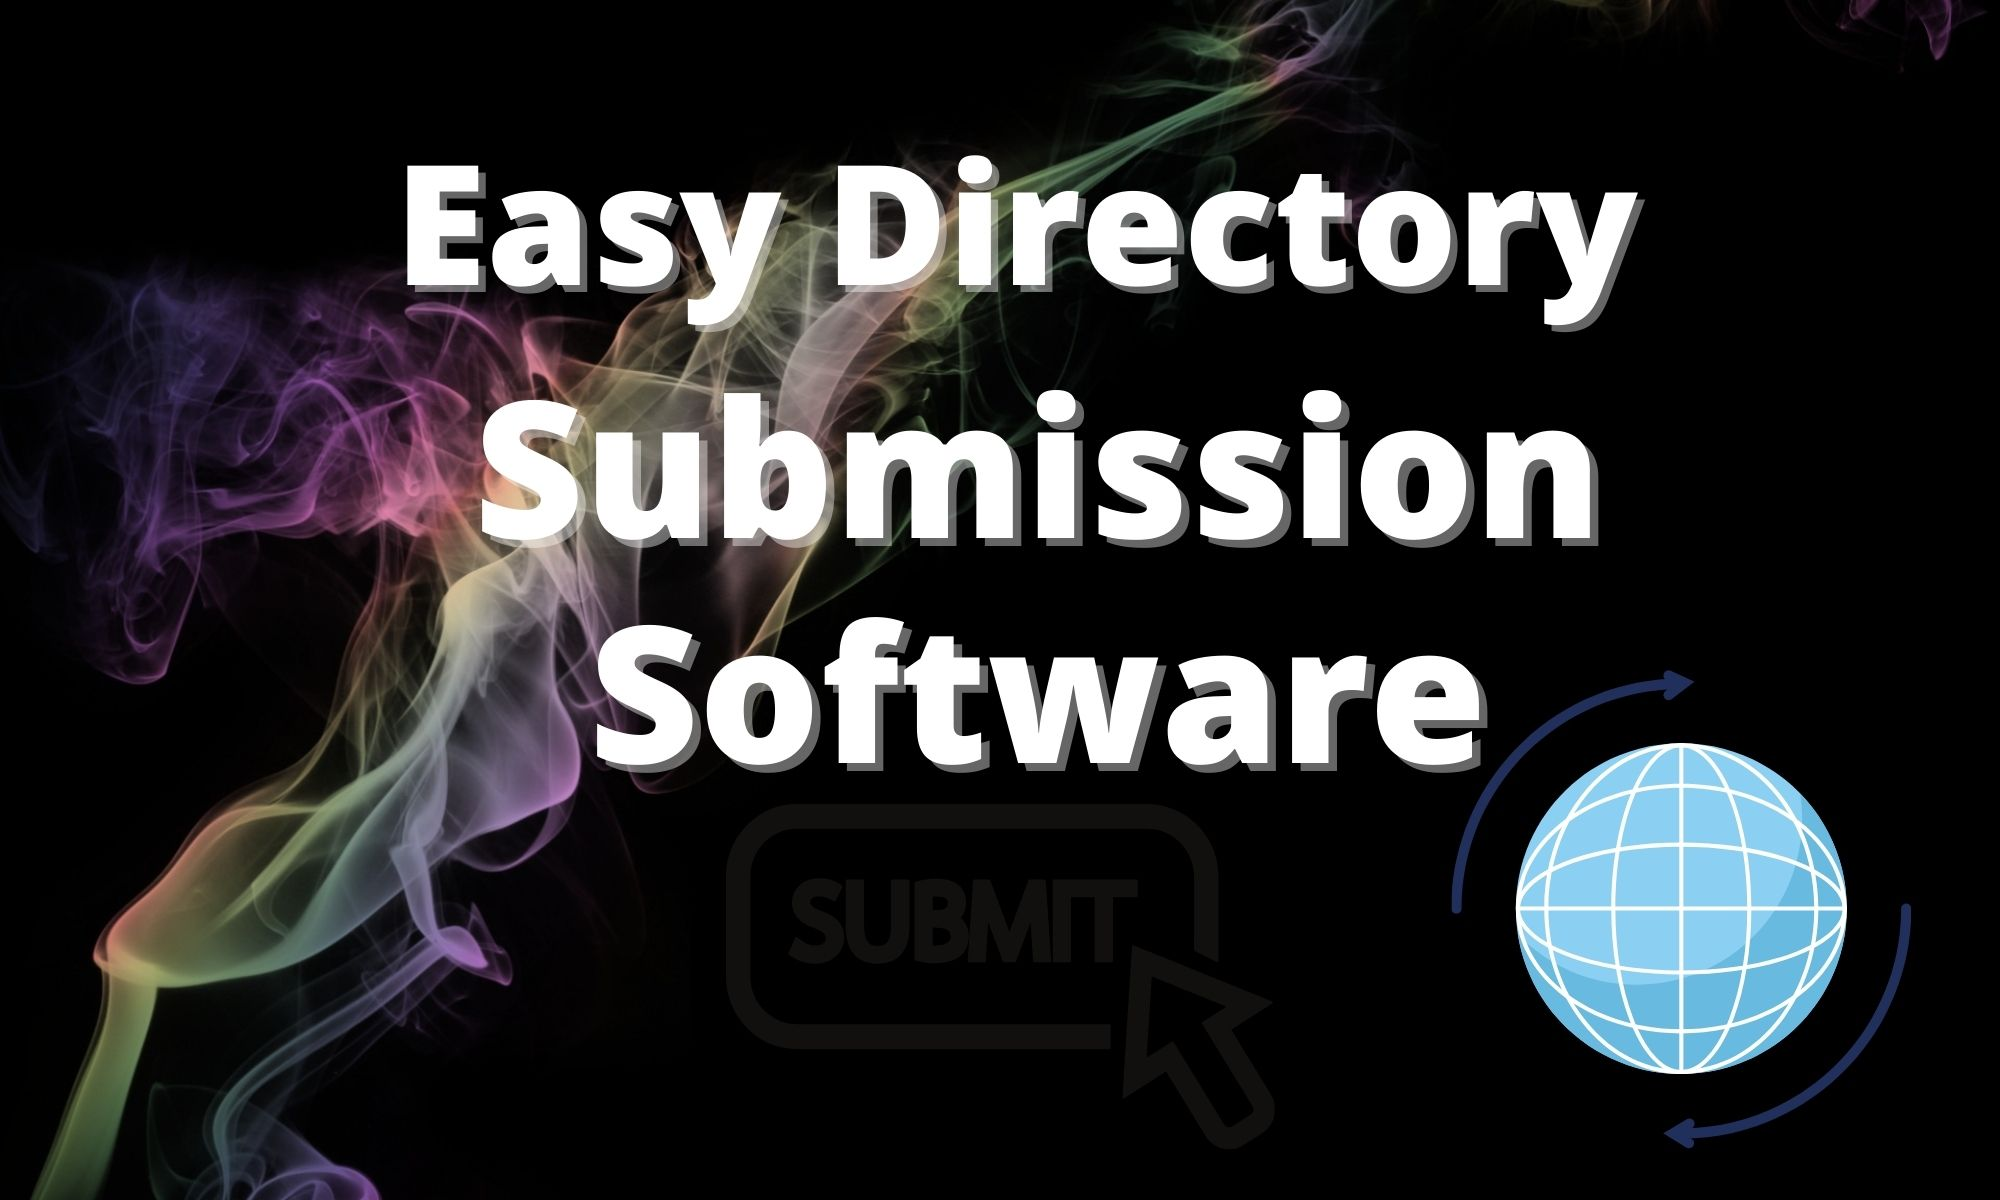 Easy Directory Submission Software for Windows